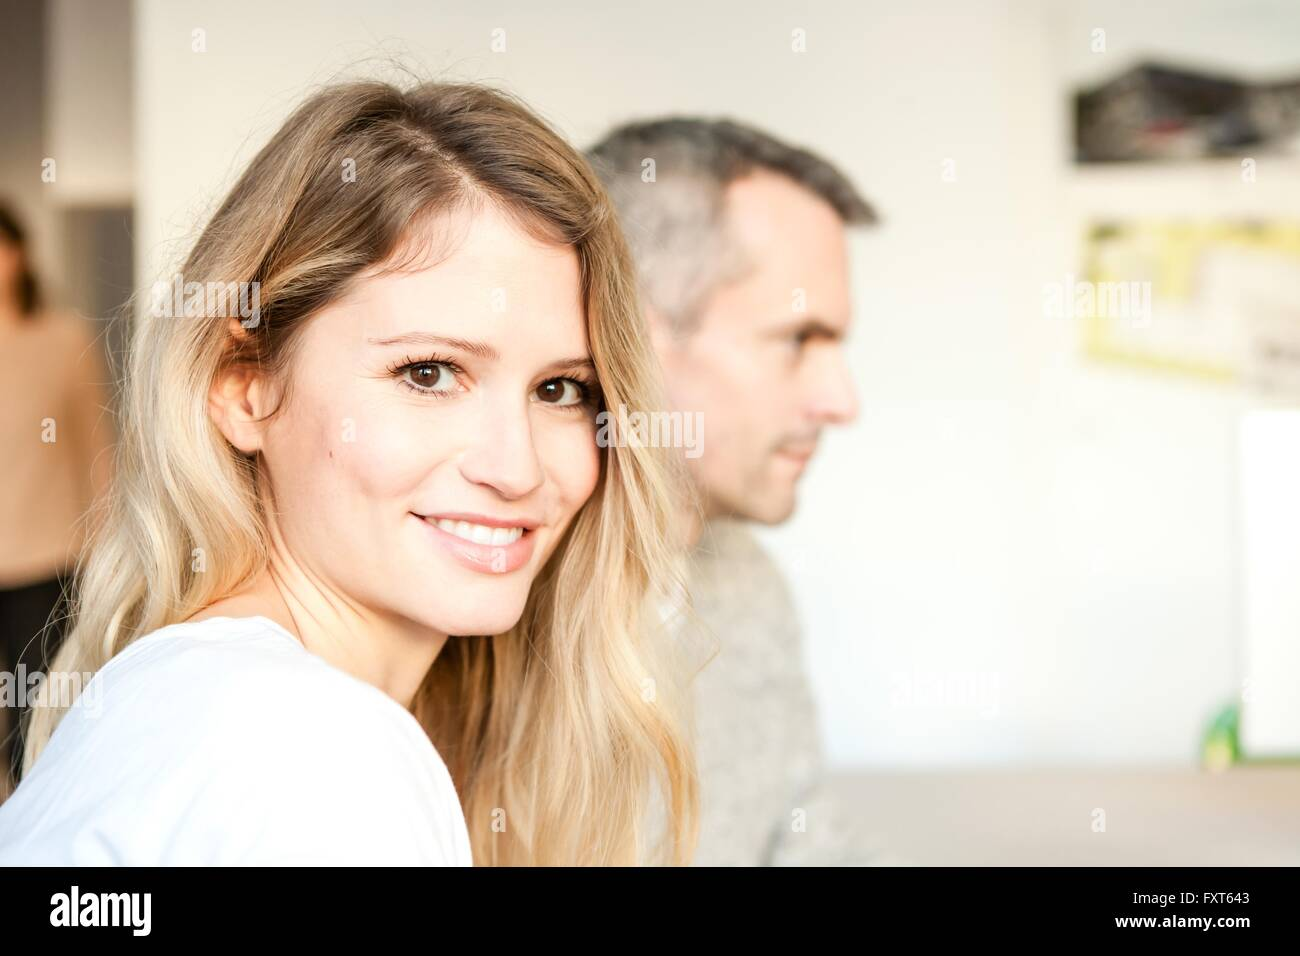 Portrait of young brown eyed woman smiling at camera Photo Stock